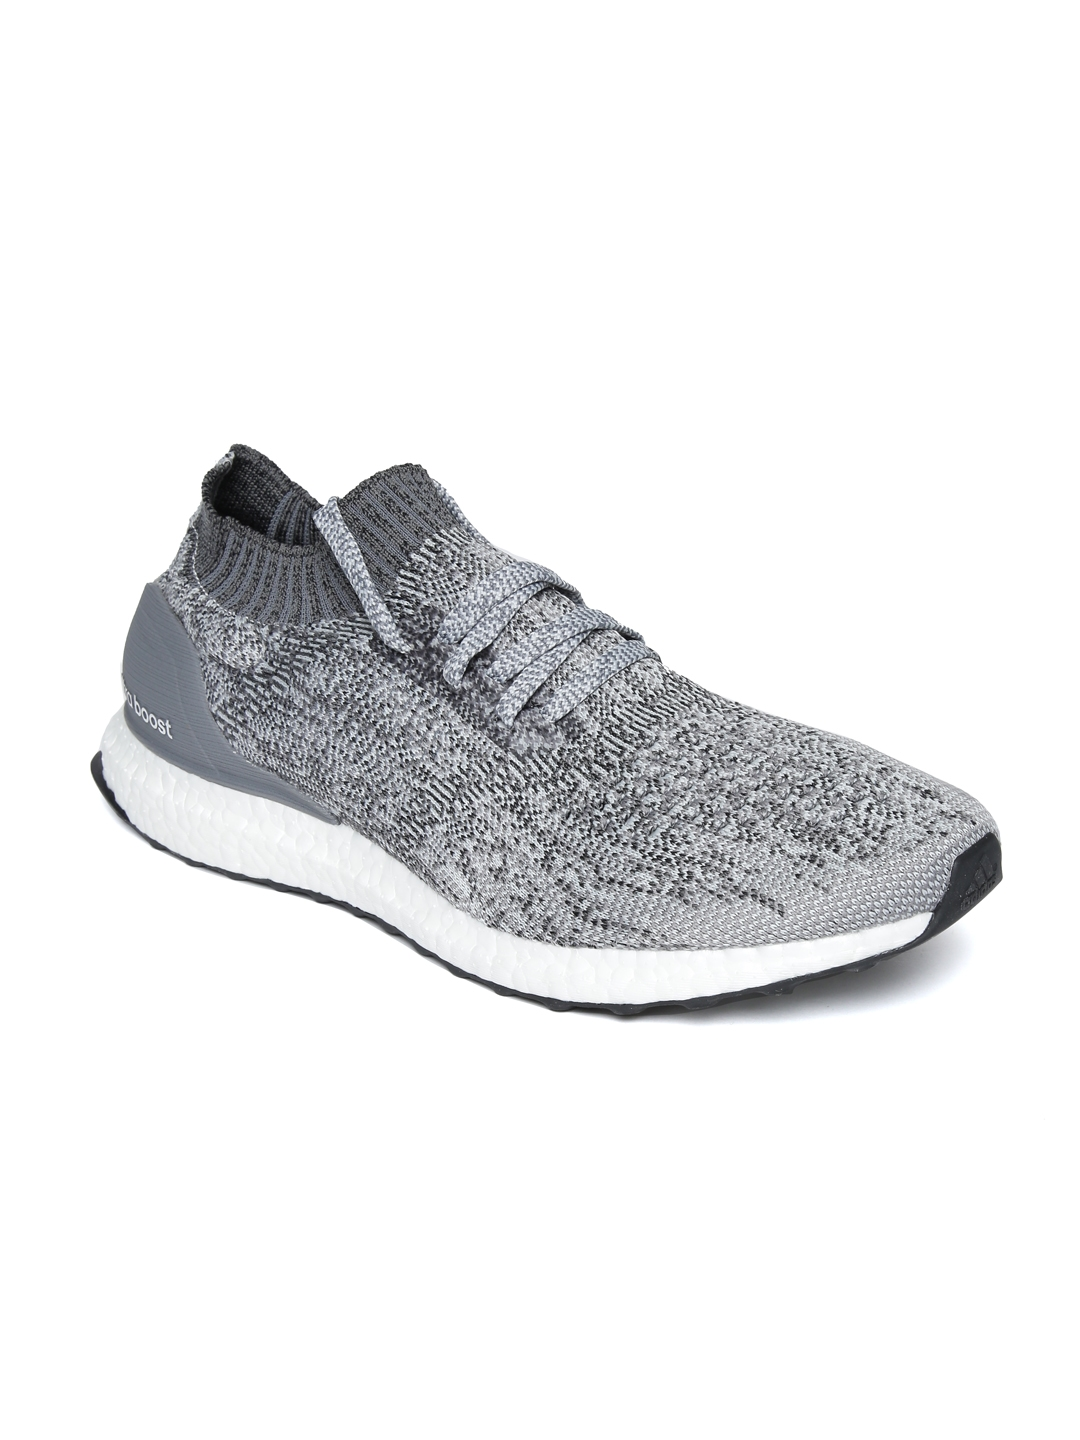 71cde234f Buy ADIDAS Men Grey Ultraboost Uncaged Running Shoes - Sports Shoes ...